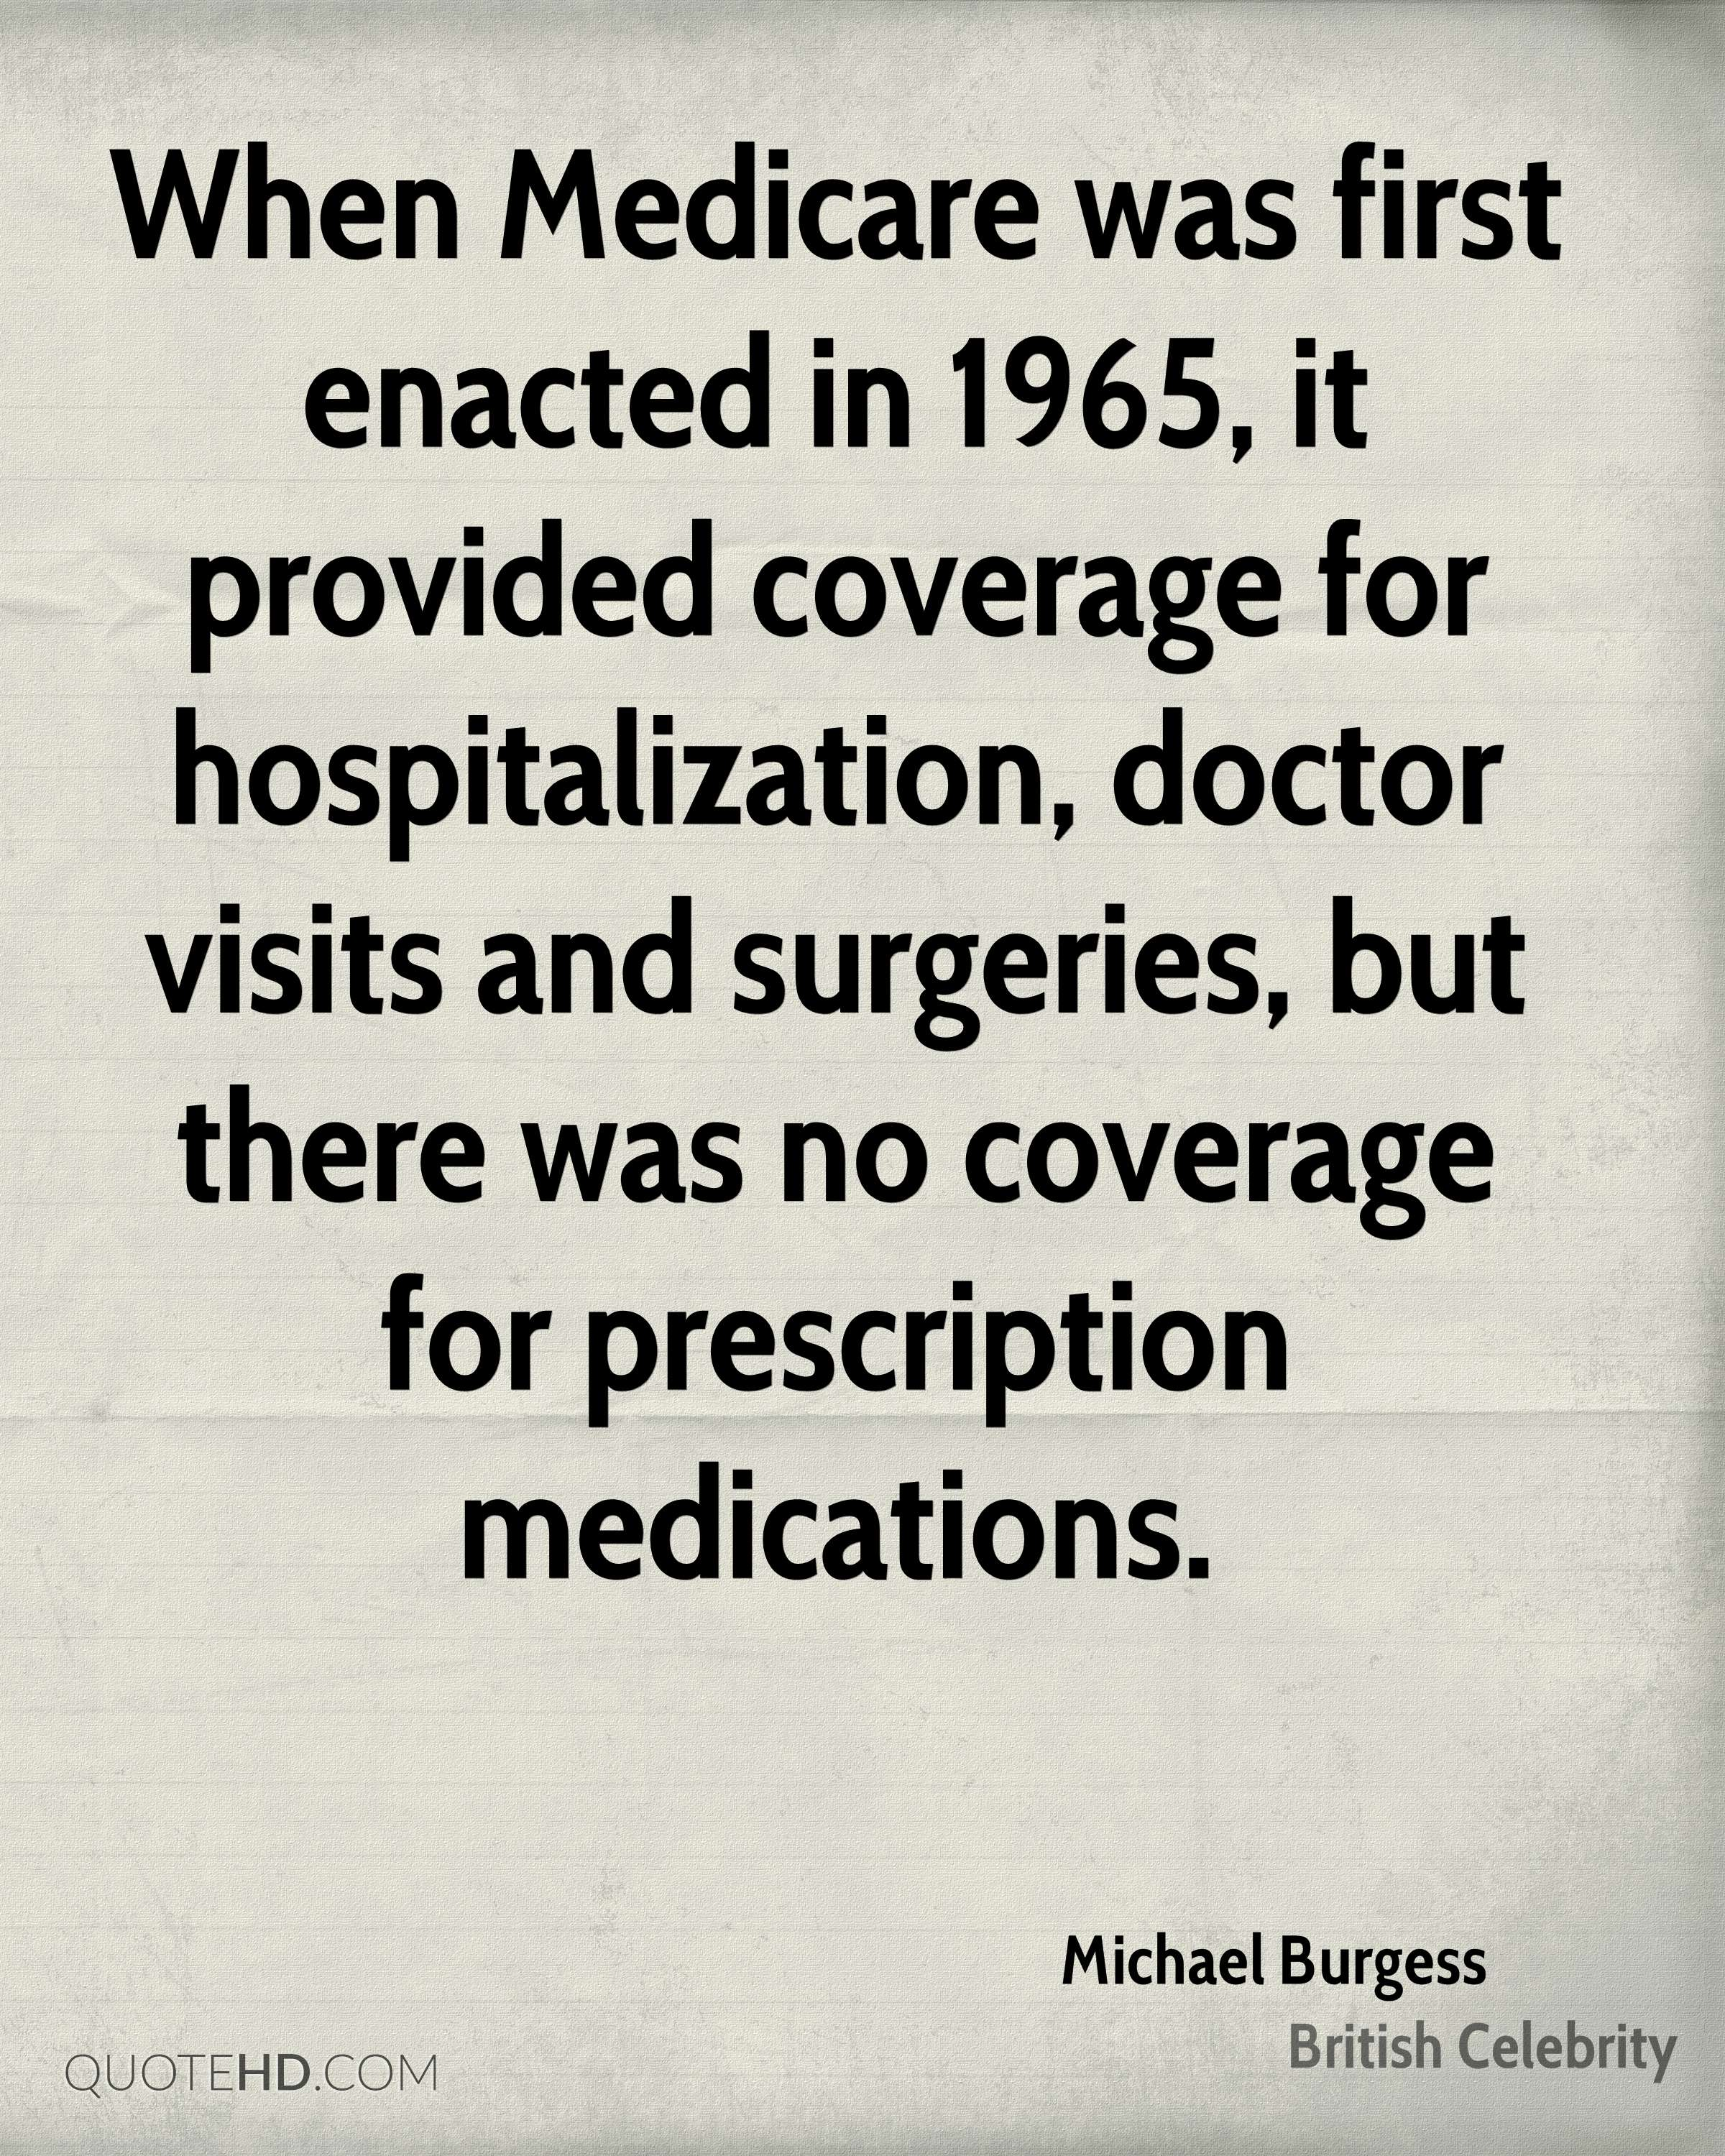 When Medicare was first enacted in 1965, it provided coverage for hospitalization, doctor visits and surgeries, but there was no coverage for prescription medications.